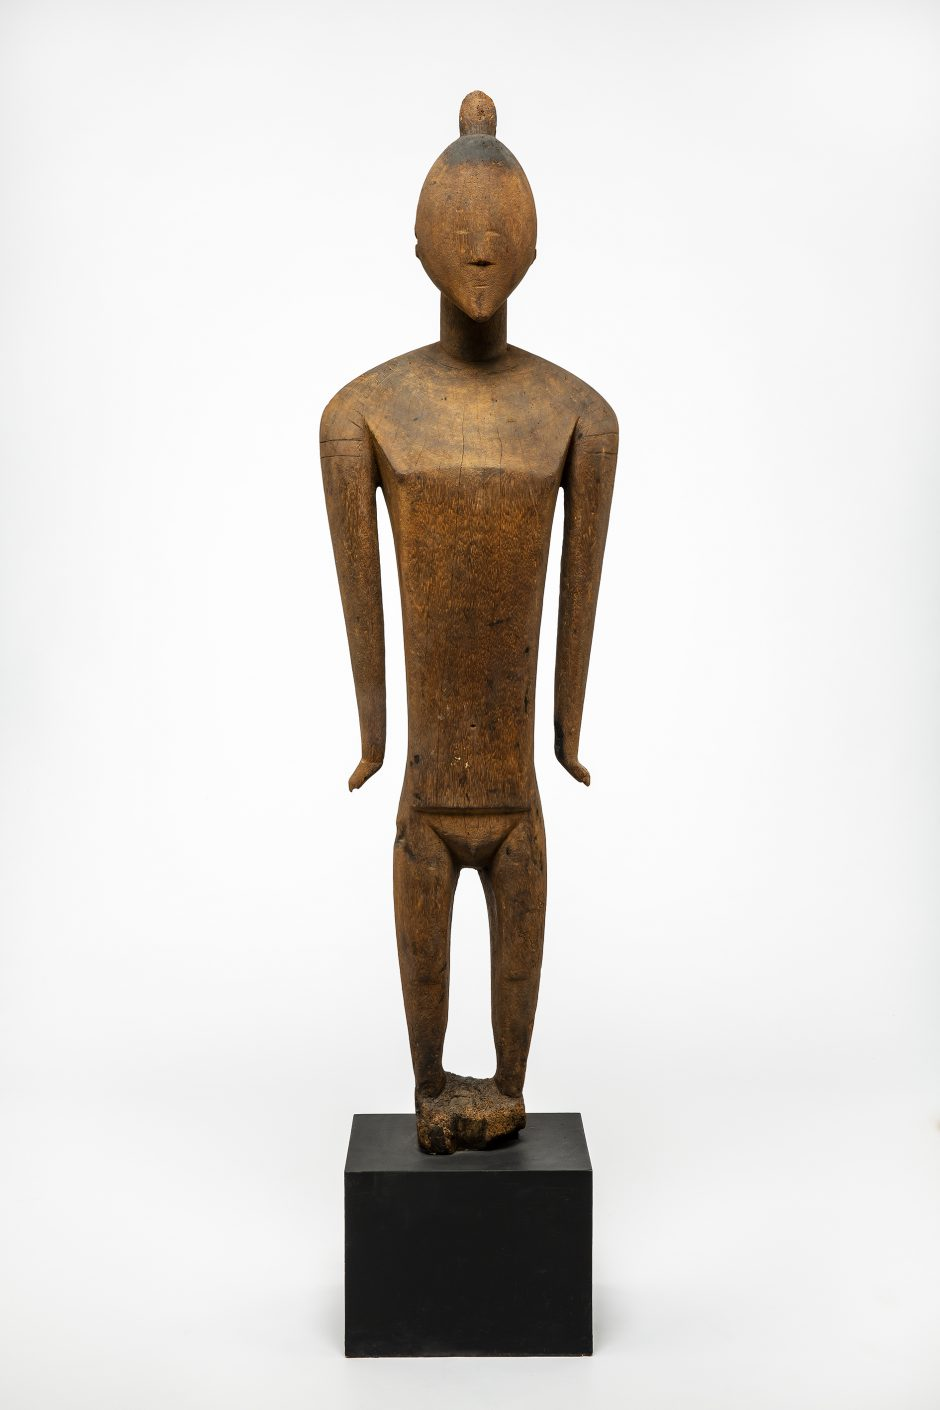 Standing figure, sculpture – Tino aitu, wood, pedestal, early 19th century